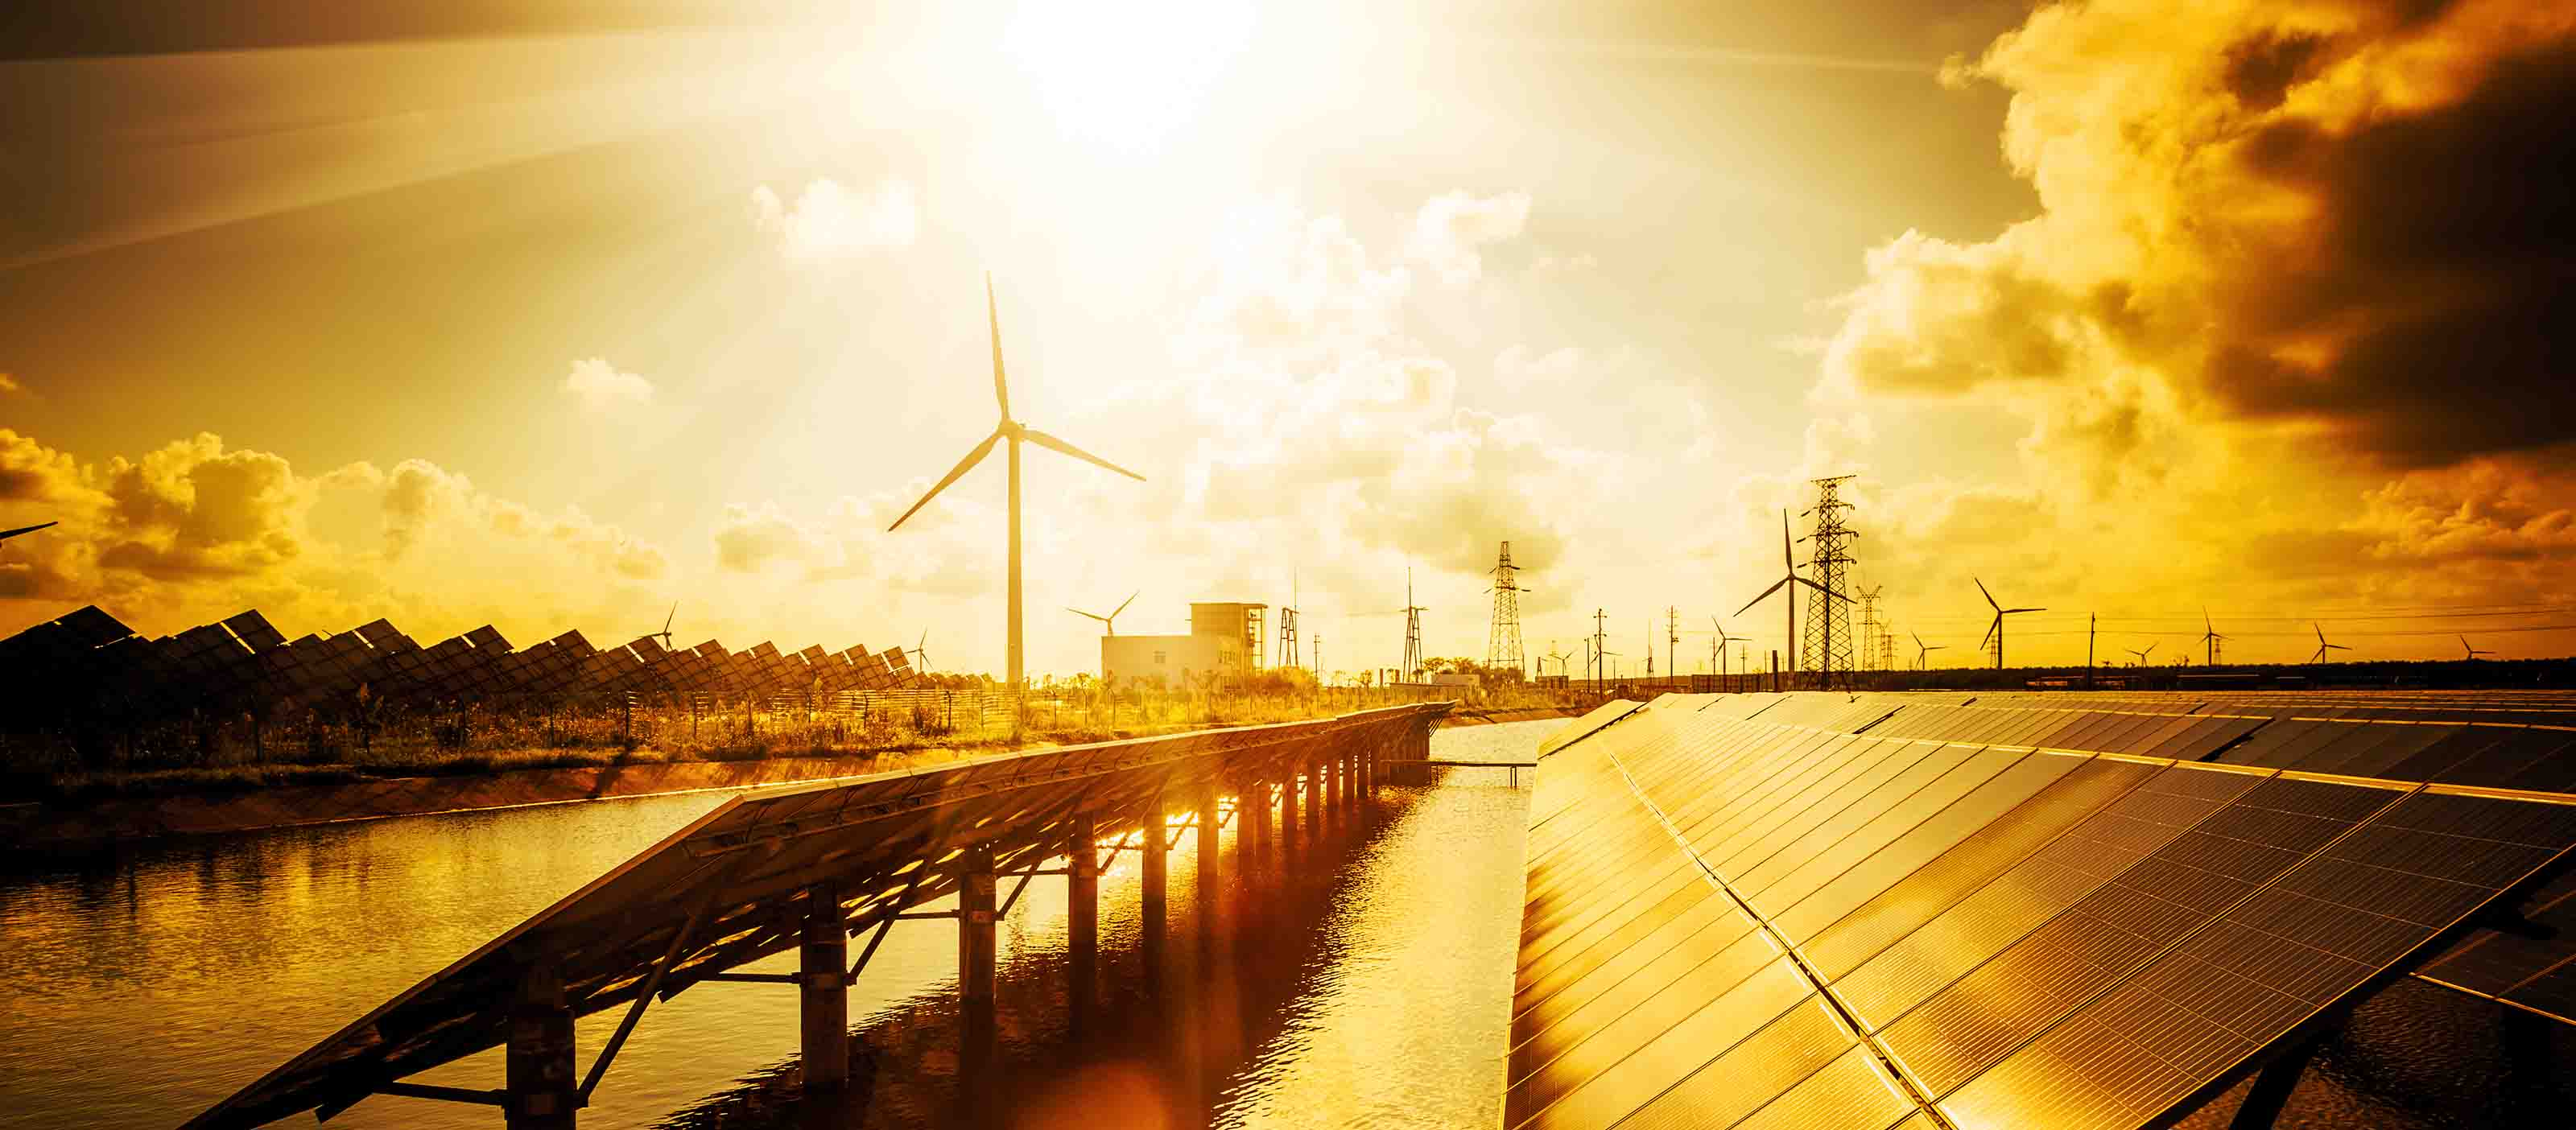 GE Digital Software assists in DER Orchestration for grid utilities